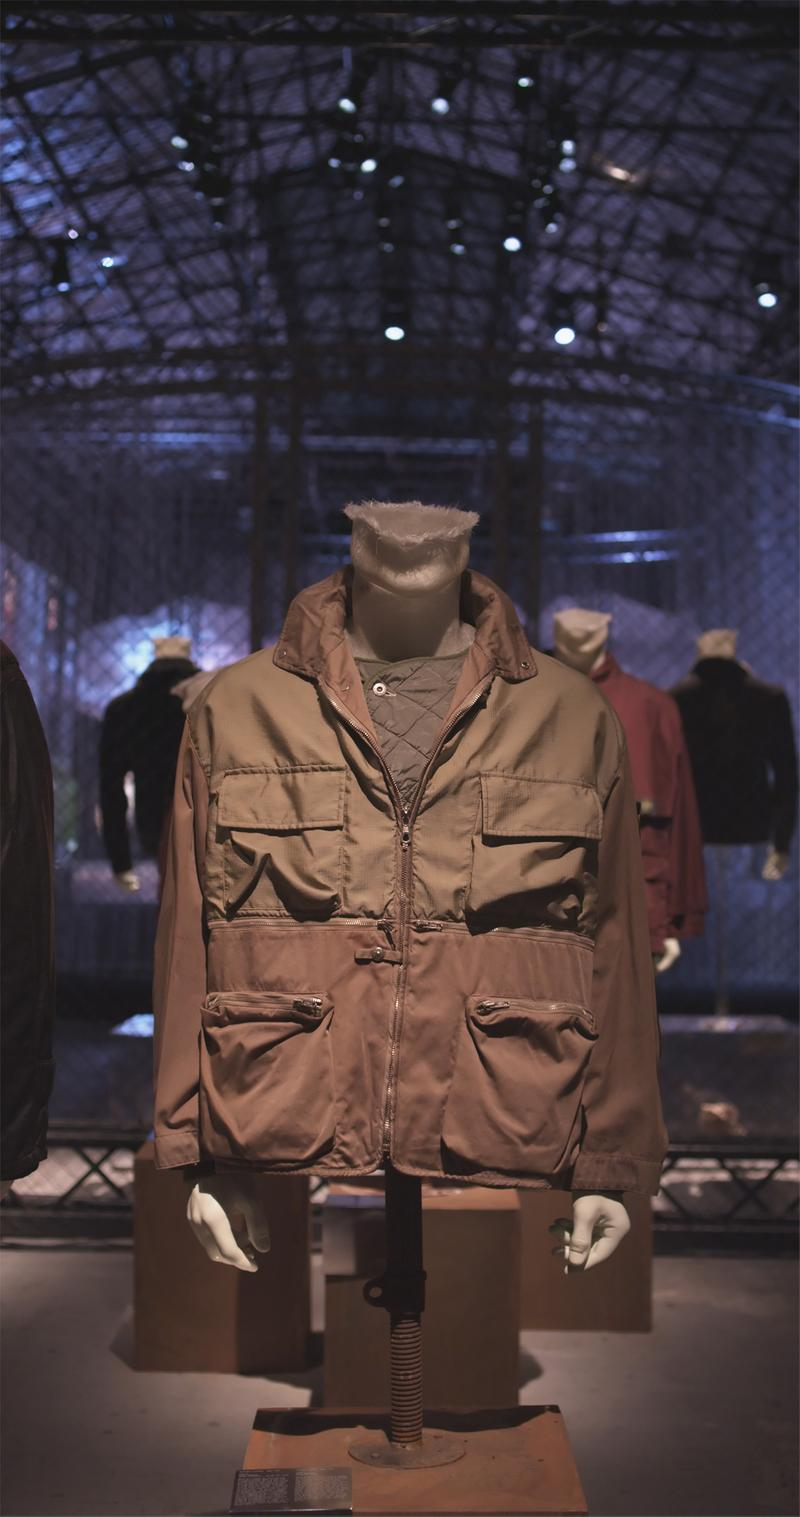 Two toned brown multi pocket jacket with zipper closure and high collar displayed on mannequin bust in exhibition hall